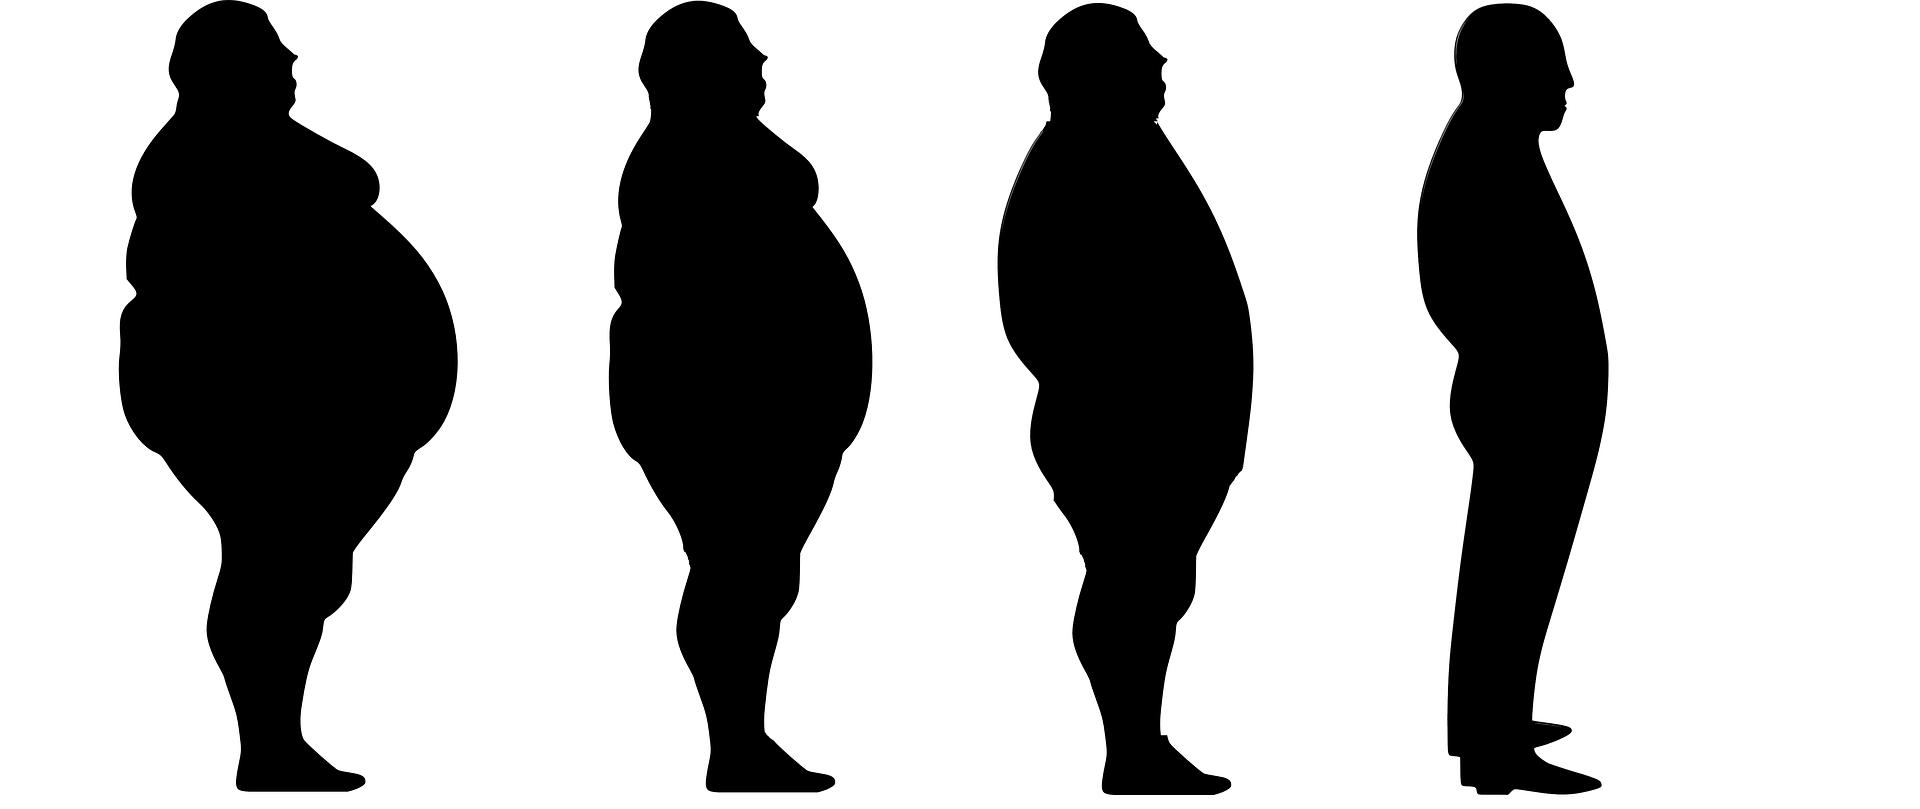 losing weight might not make you lean